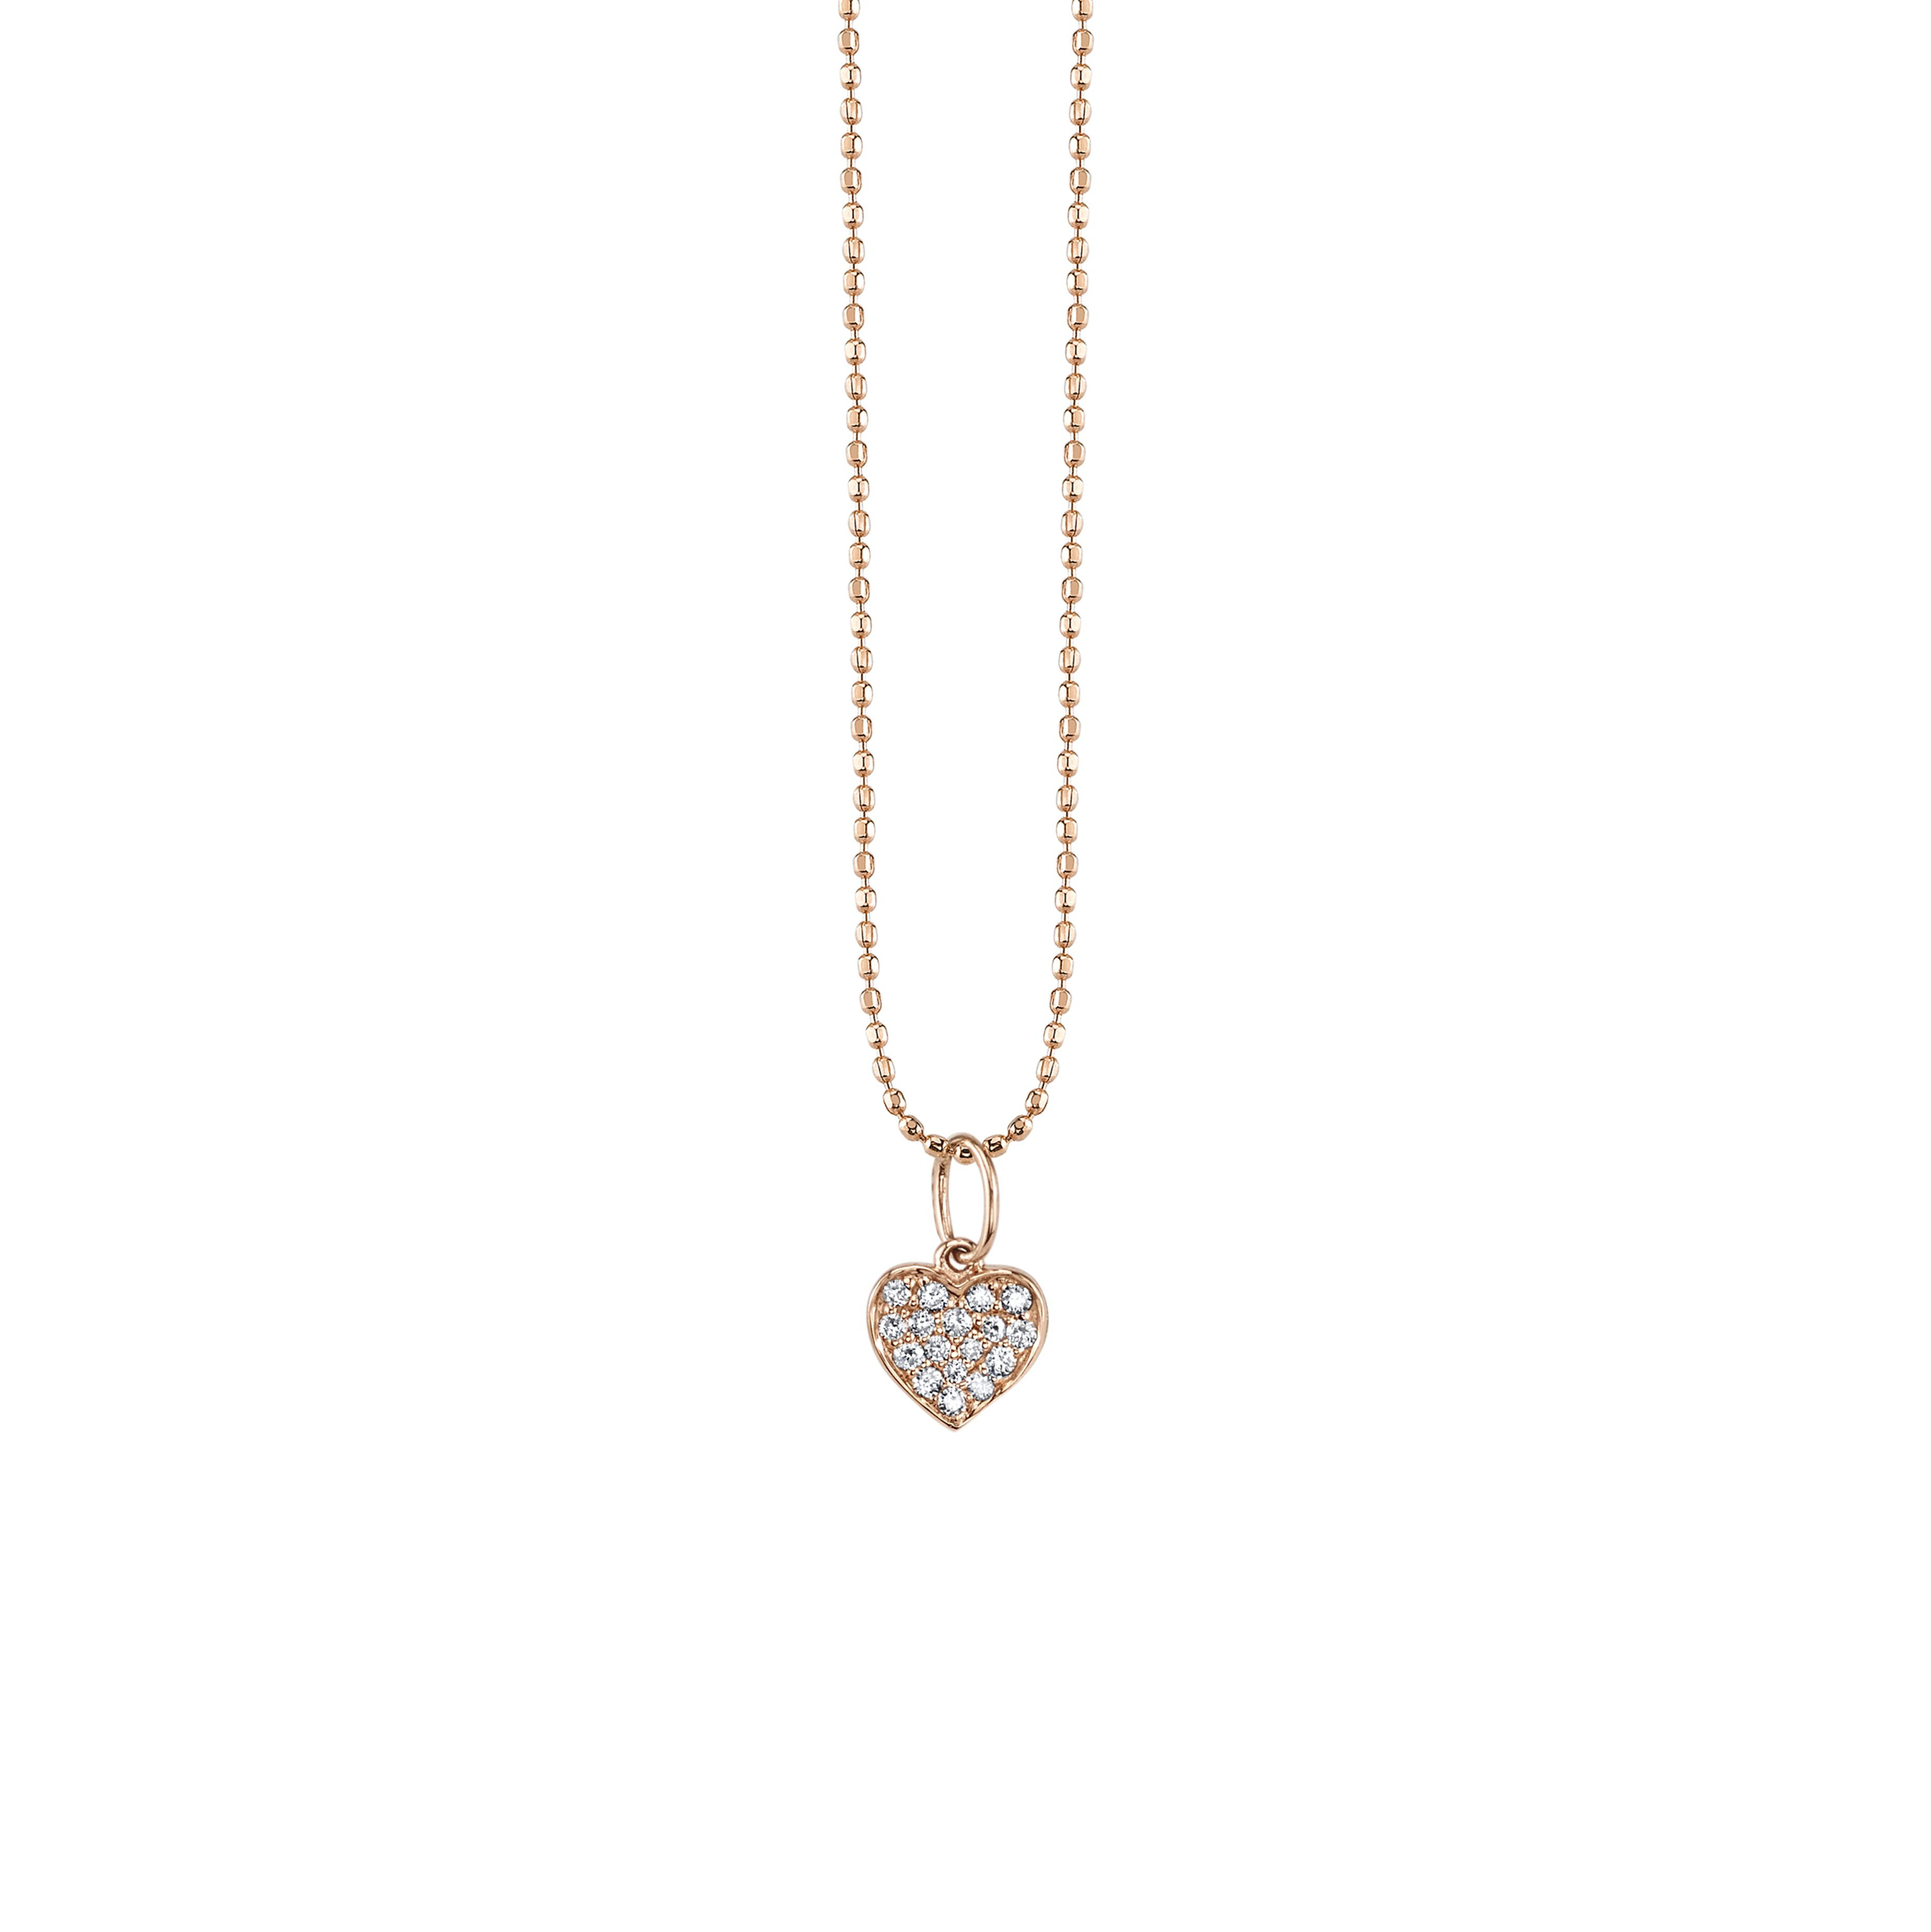 Small Gold & Pavé Diamond Heart Necklace With Current Small Diamond Necklaces (View 18 of 25)